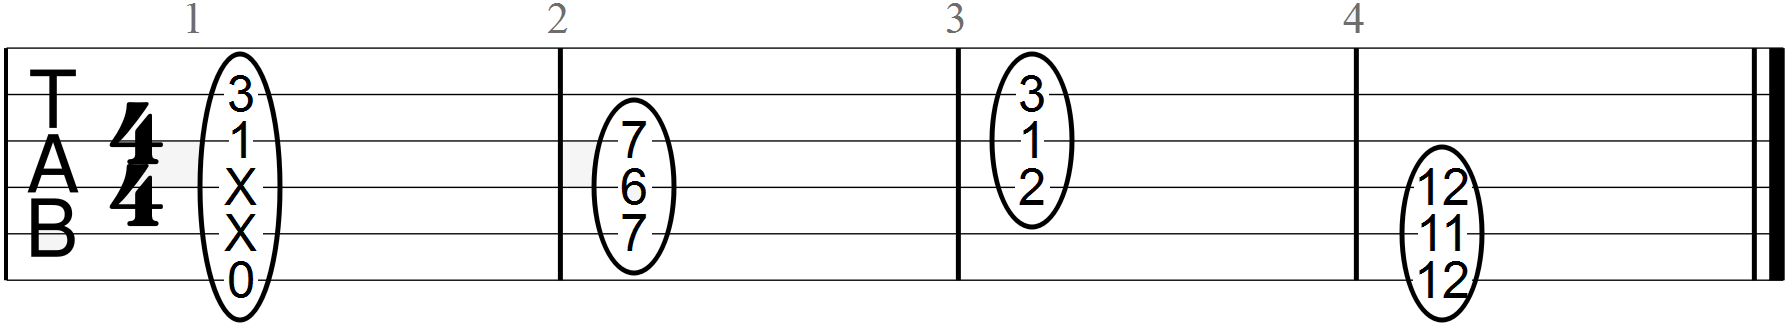 E7 Triadic Chords with Minor Seventh Interval and Major Third